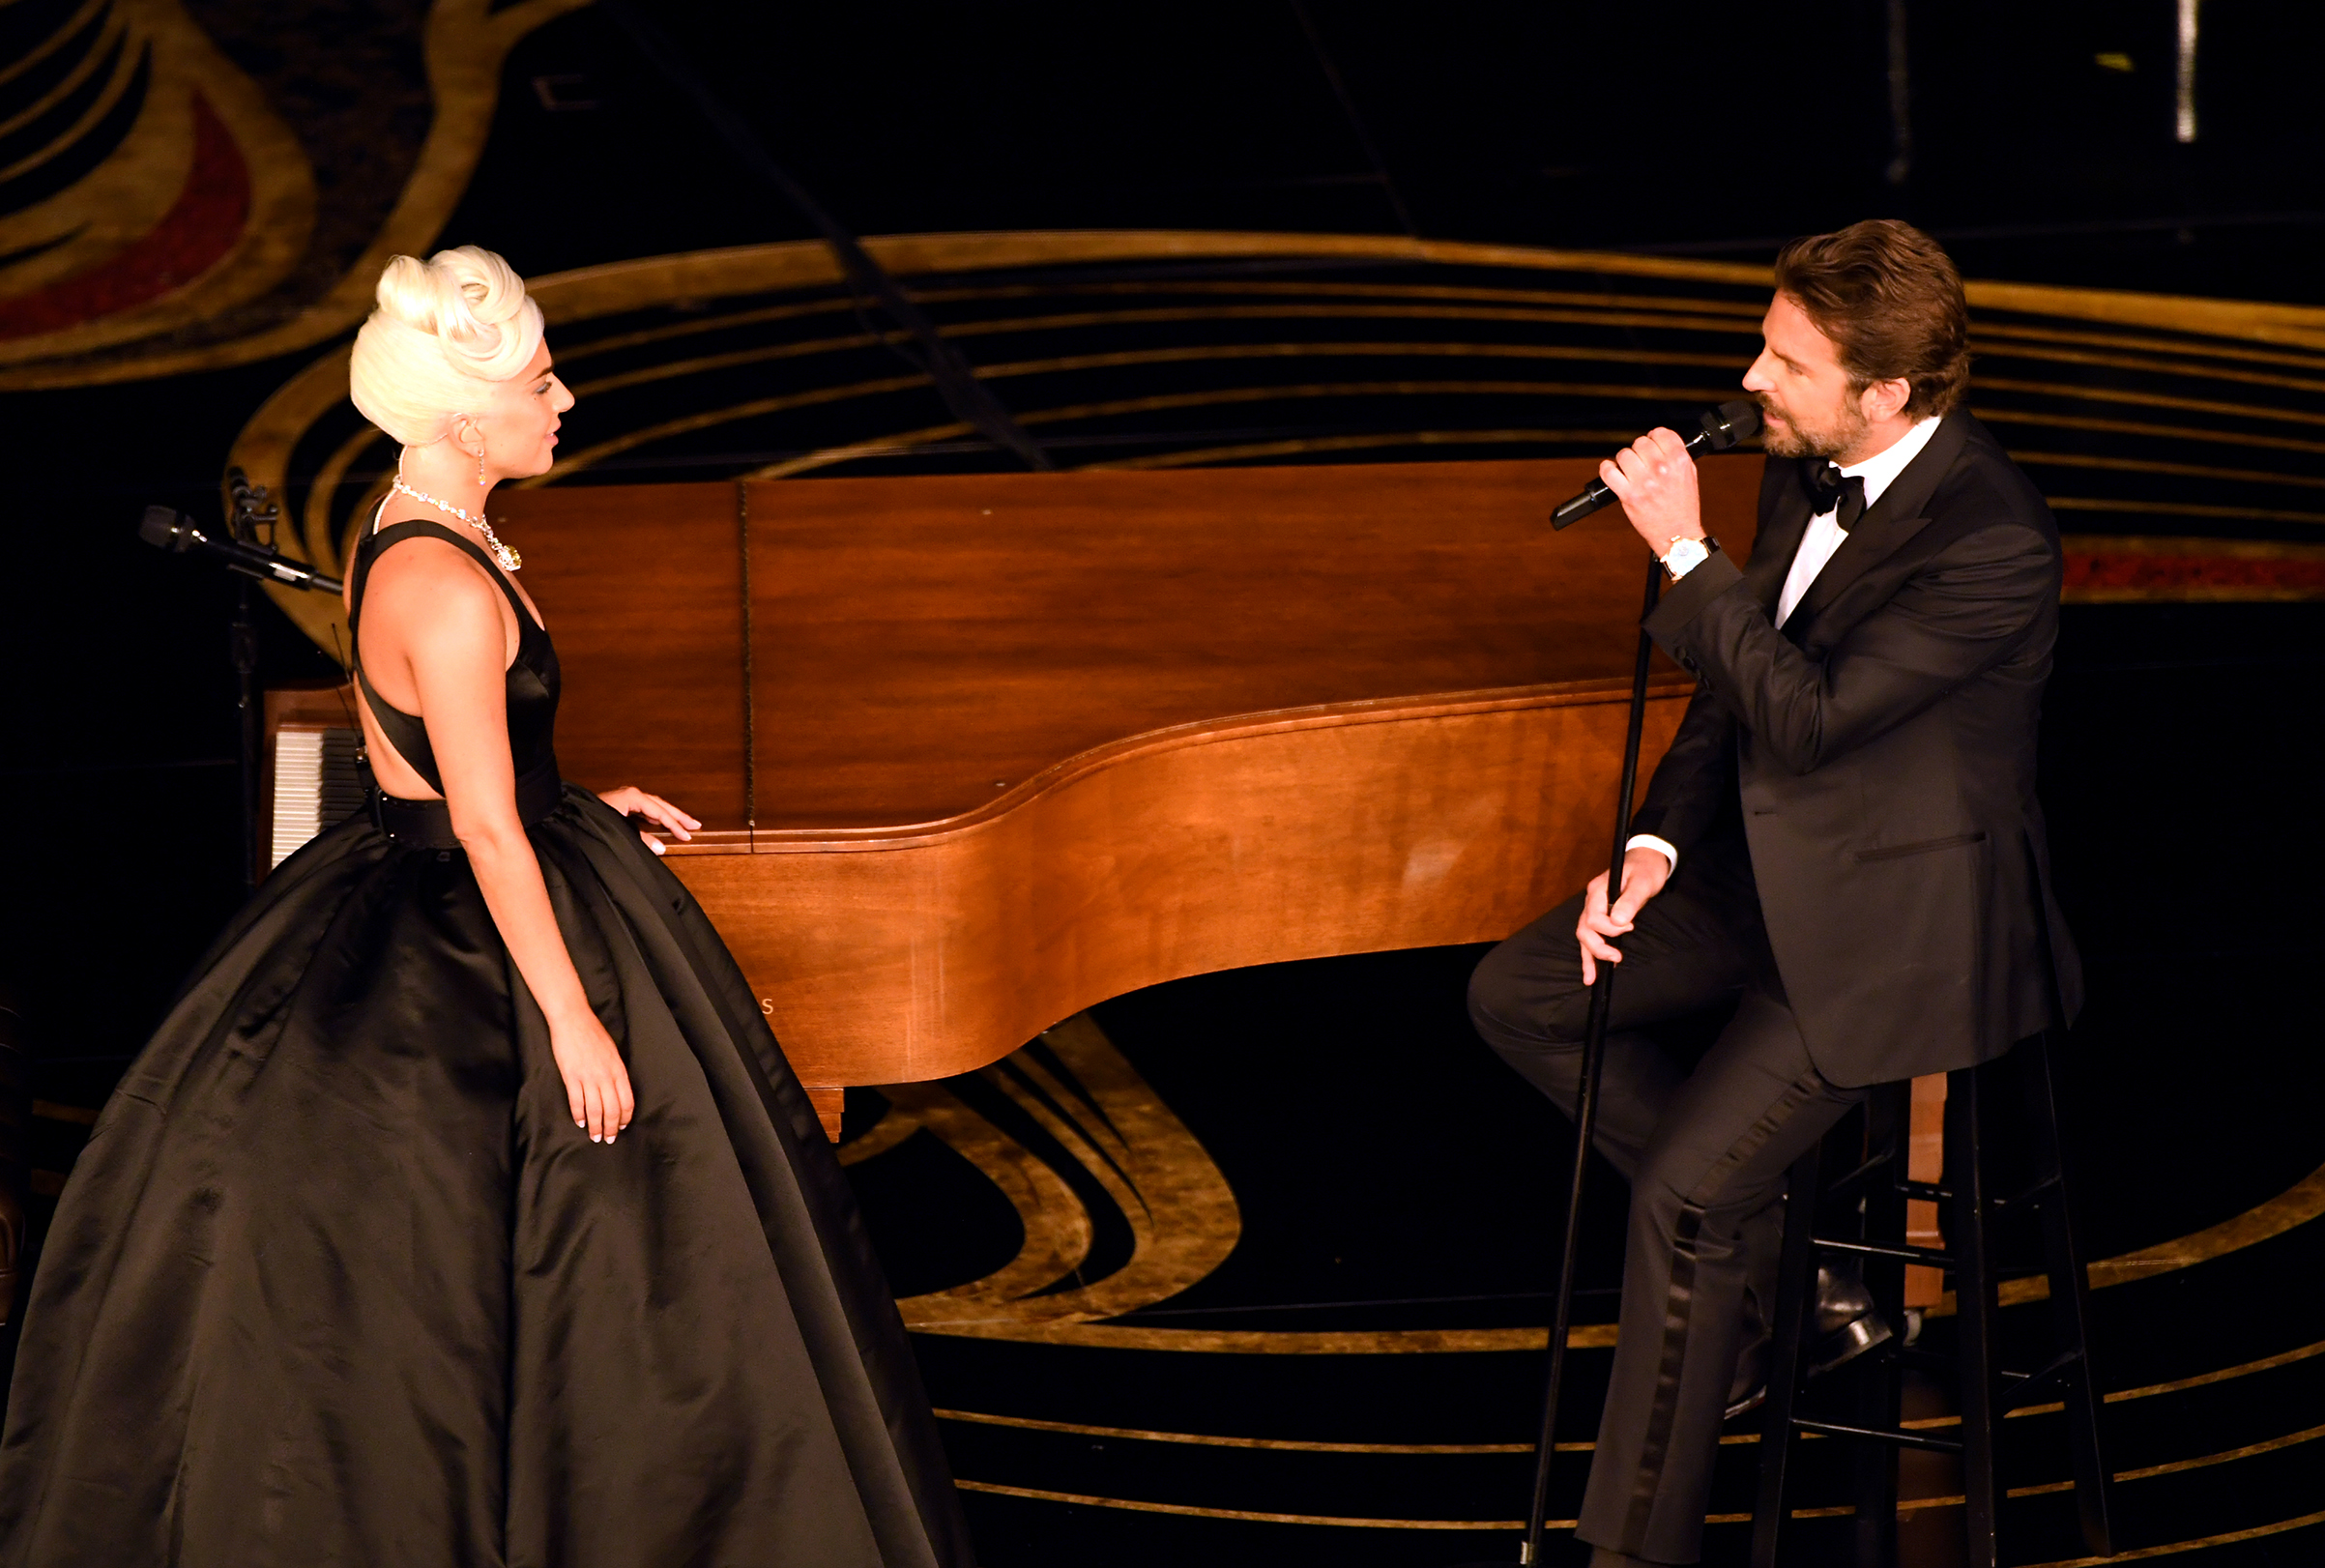 Lady Gaga and Bradley Cooper perform onstage during the 91st Annual Academy Awards at Dolby Theatre on Feb. 24, 2019.